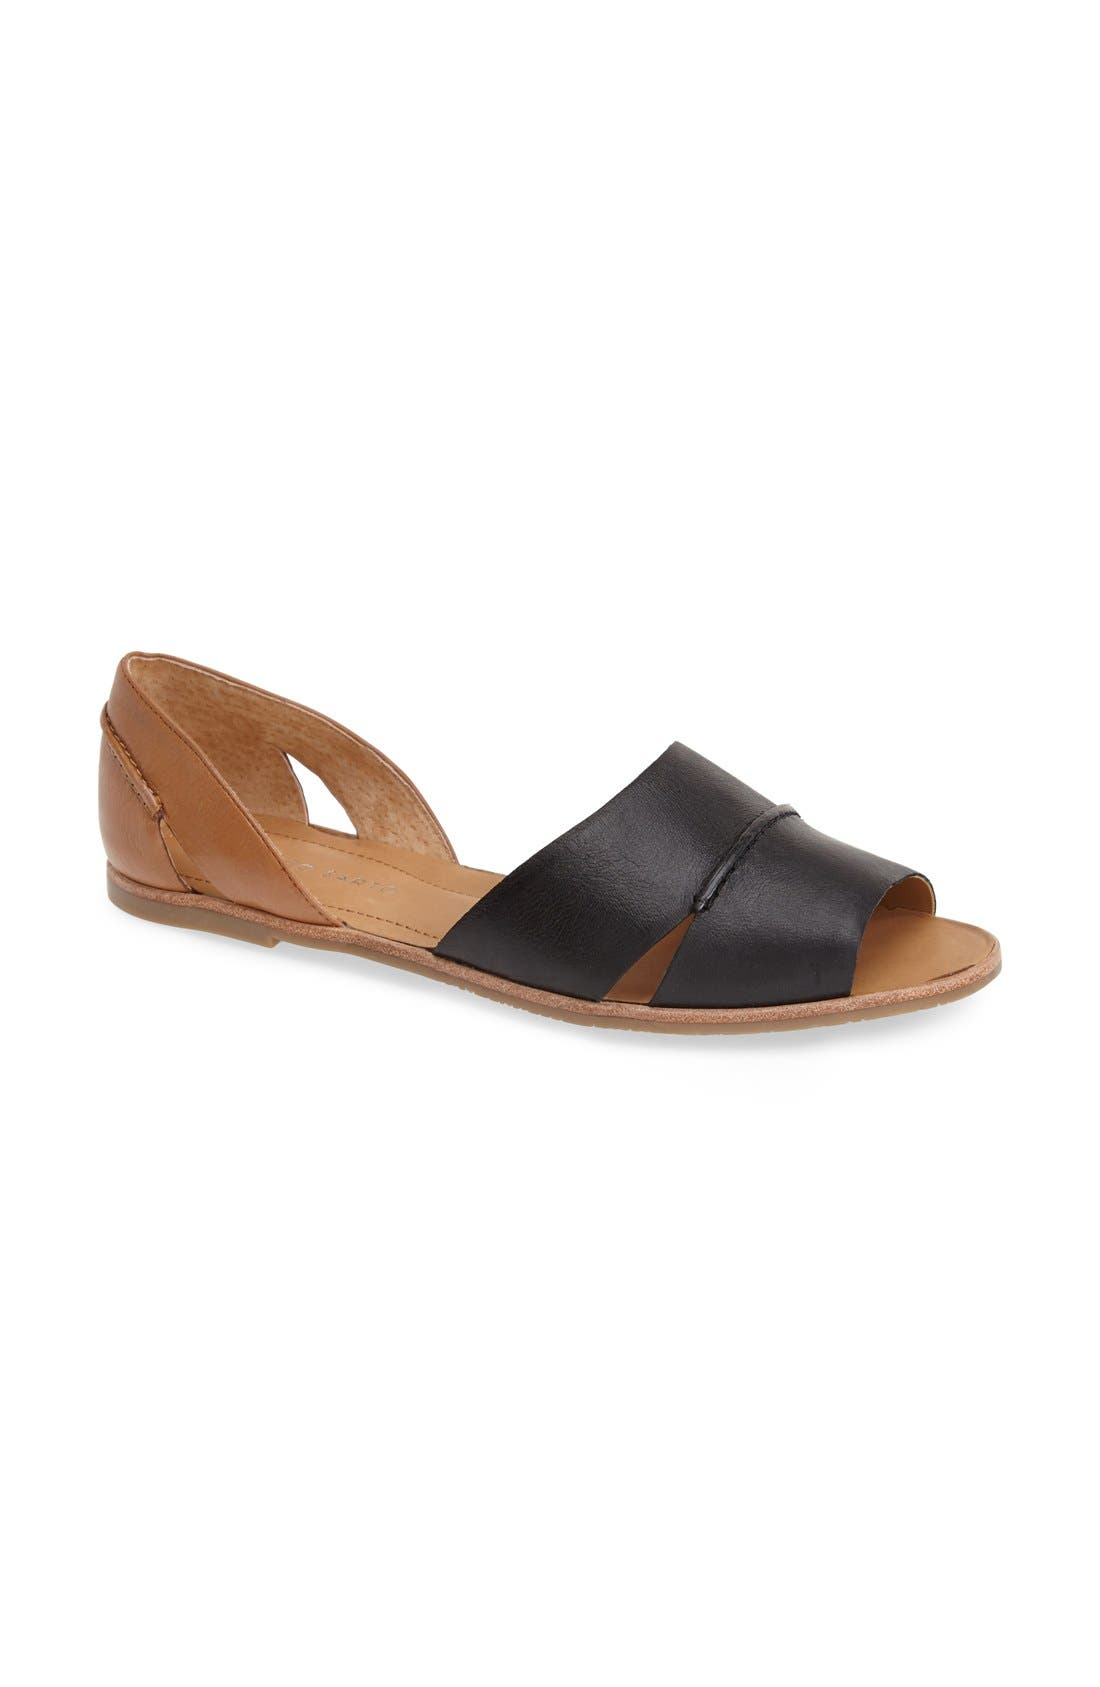 FRANCO SARTO 'Vivace' Leather d'Orsay Flat, Main, color, 002